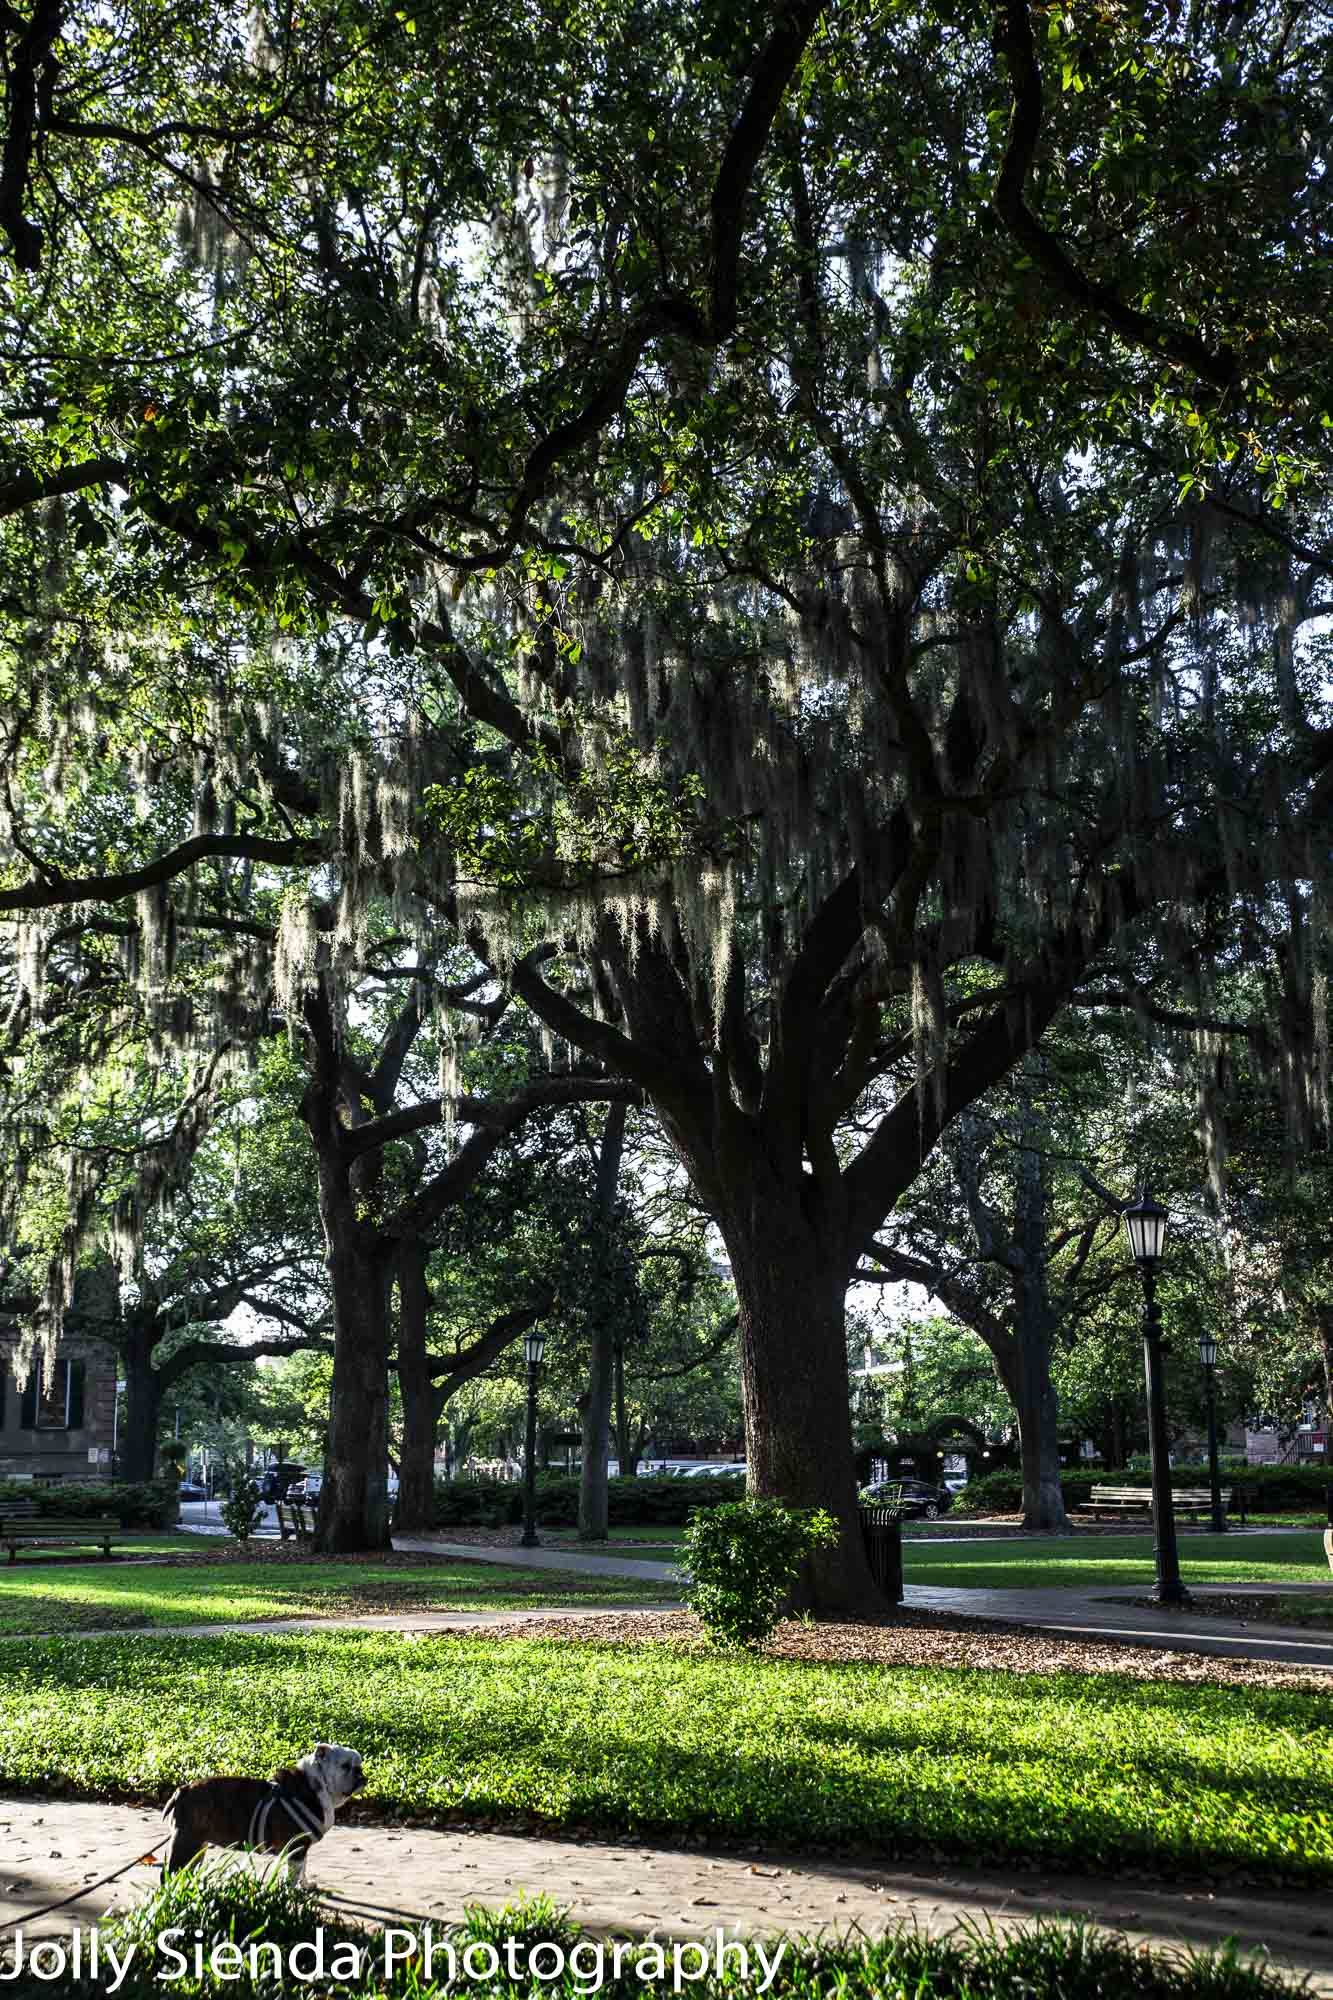 Dog and Spanish Moss tree at Oglethorpe Square